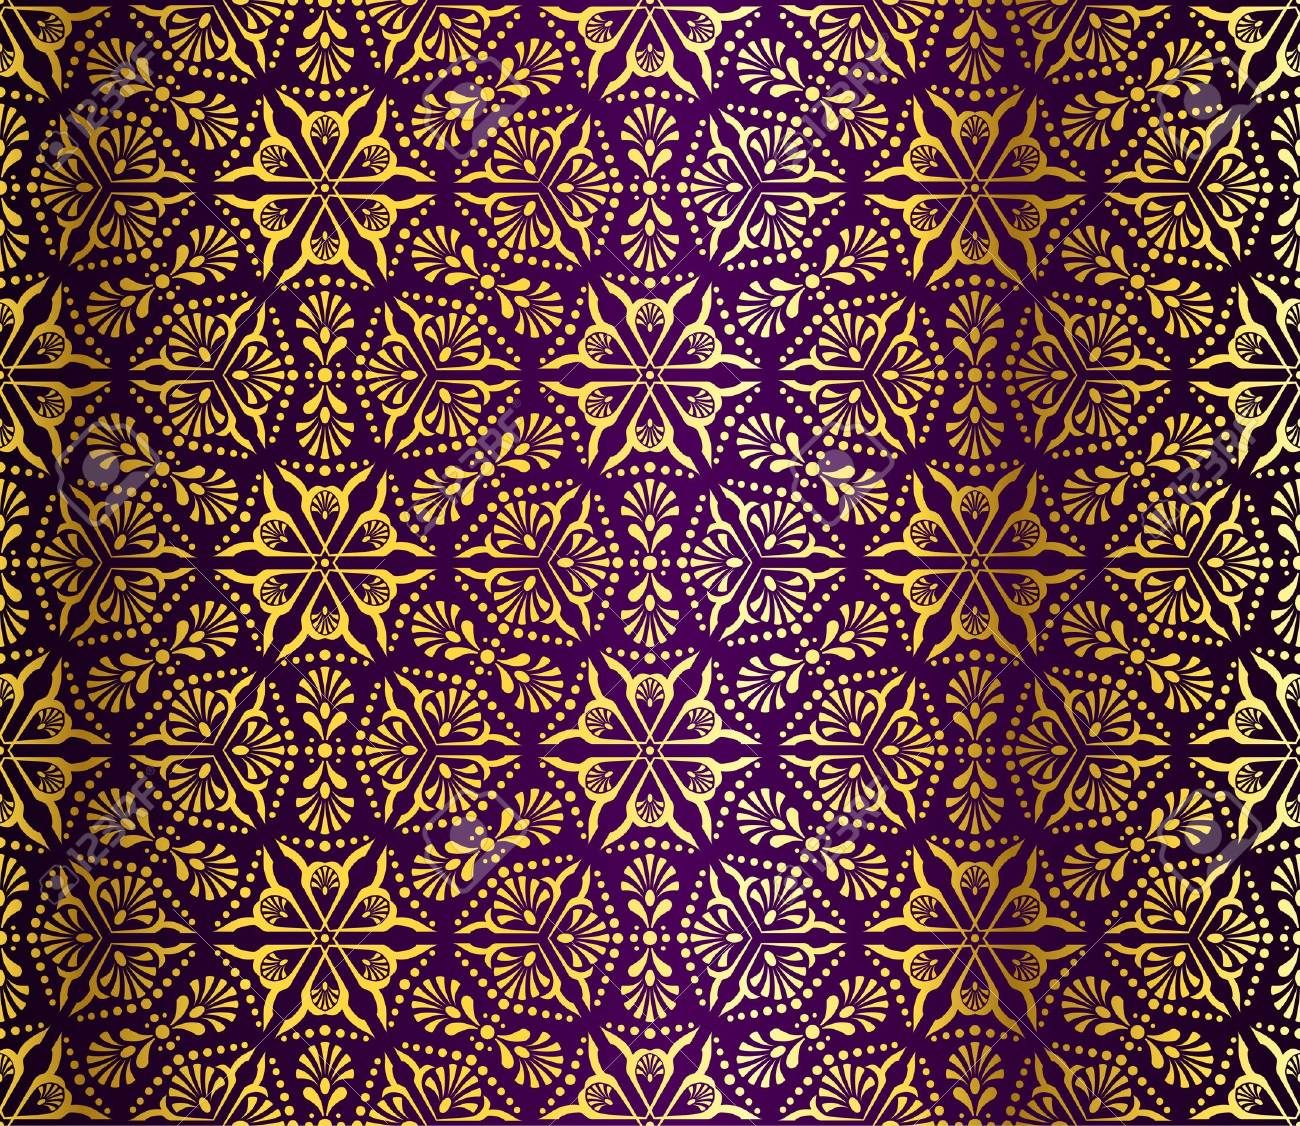 Seamless gold on purple pattern inspired by Islamic art. Stock Vector - 6803335